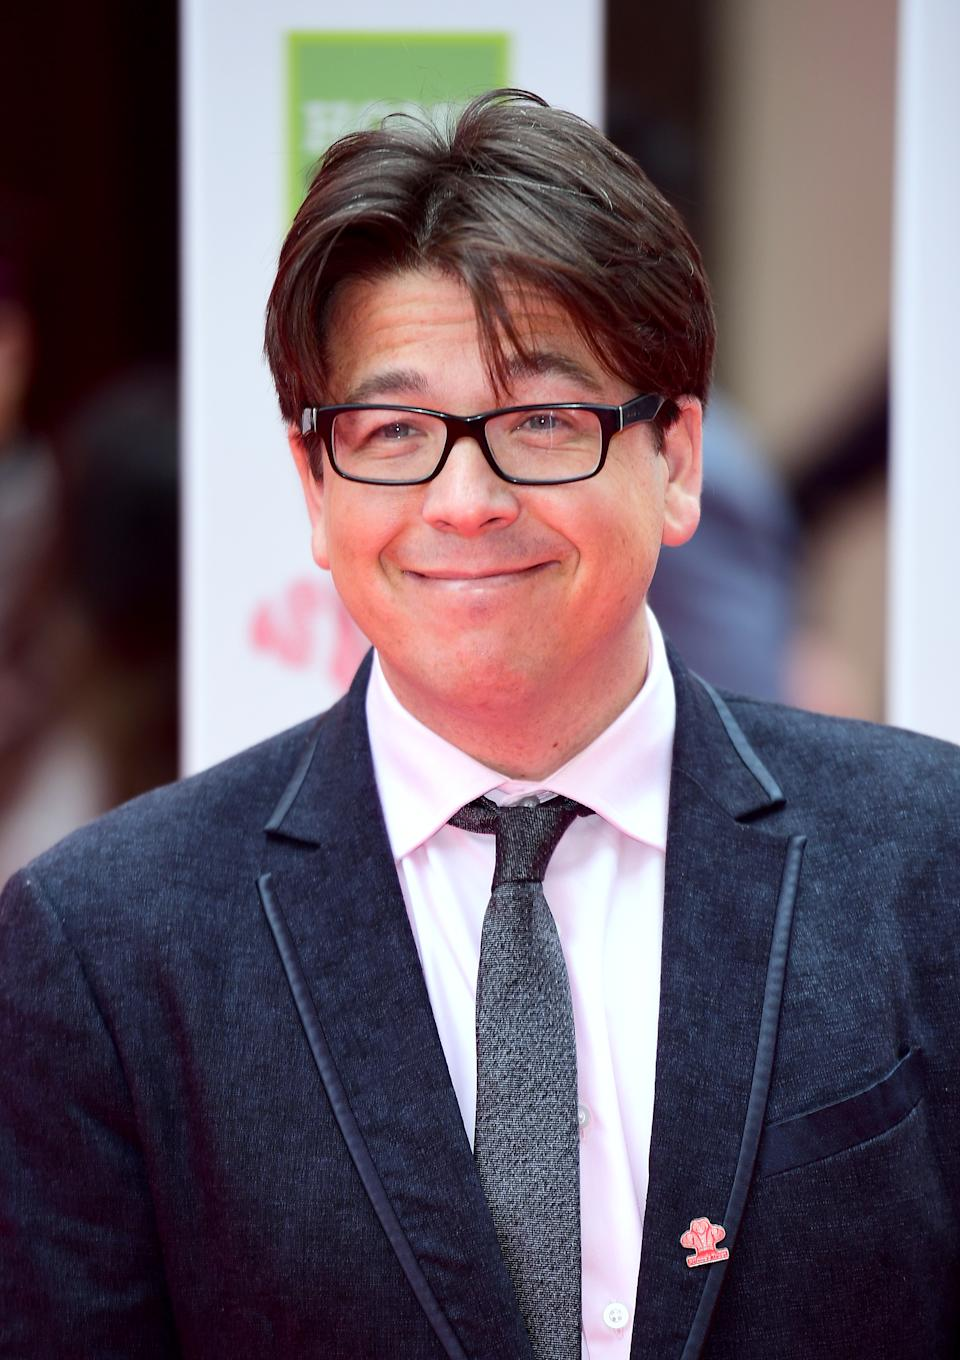 File photo dated 13/03/19 of Michael McIntyre, as his BBC game show 'The Wheel' is one of this year's festive TV highlights over the Christmas period. Strictly Come Dancing, Call The Midwife and Britain�s Got Talent are also among the programmes that will be providing festive entertainment this year.